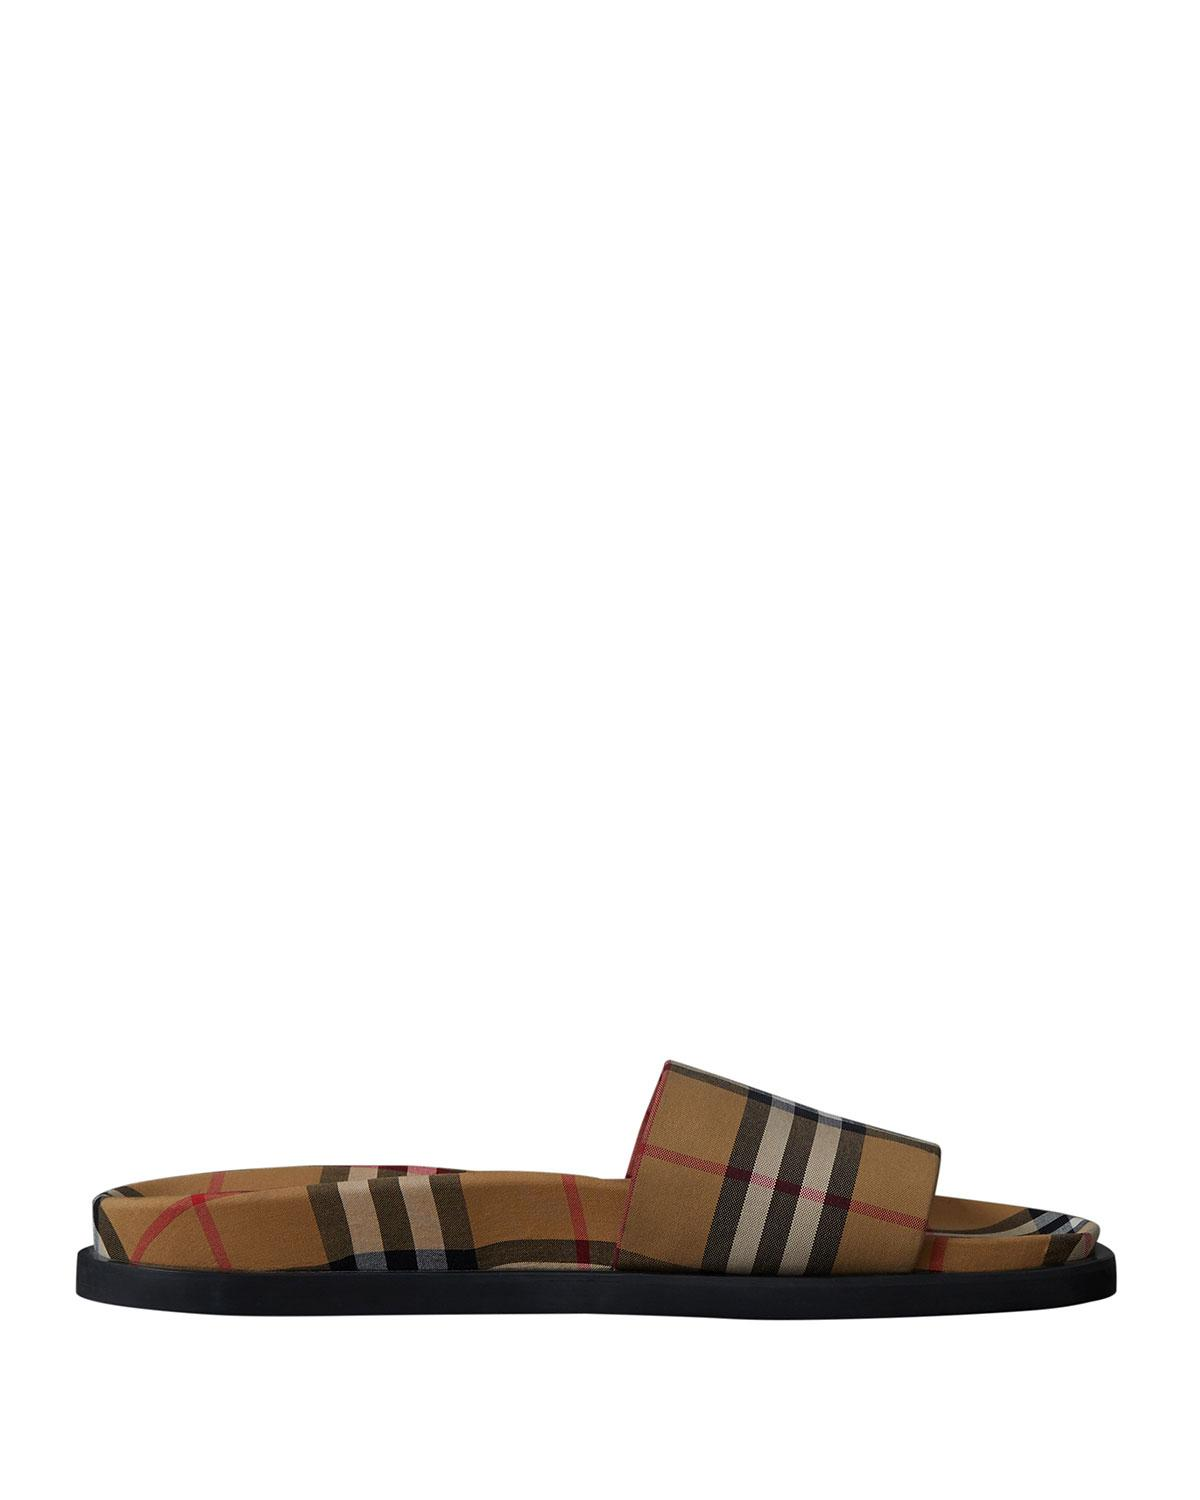 8c4a0218b52727 Lyst - Burberry Men s Ashmore Check Slide Sandal in Yellow for Men